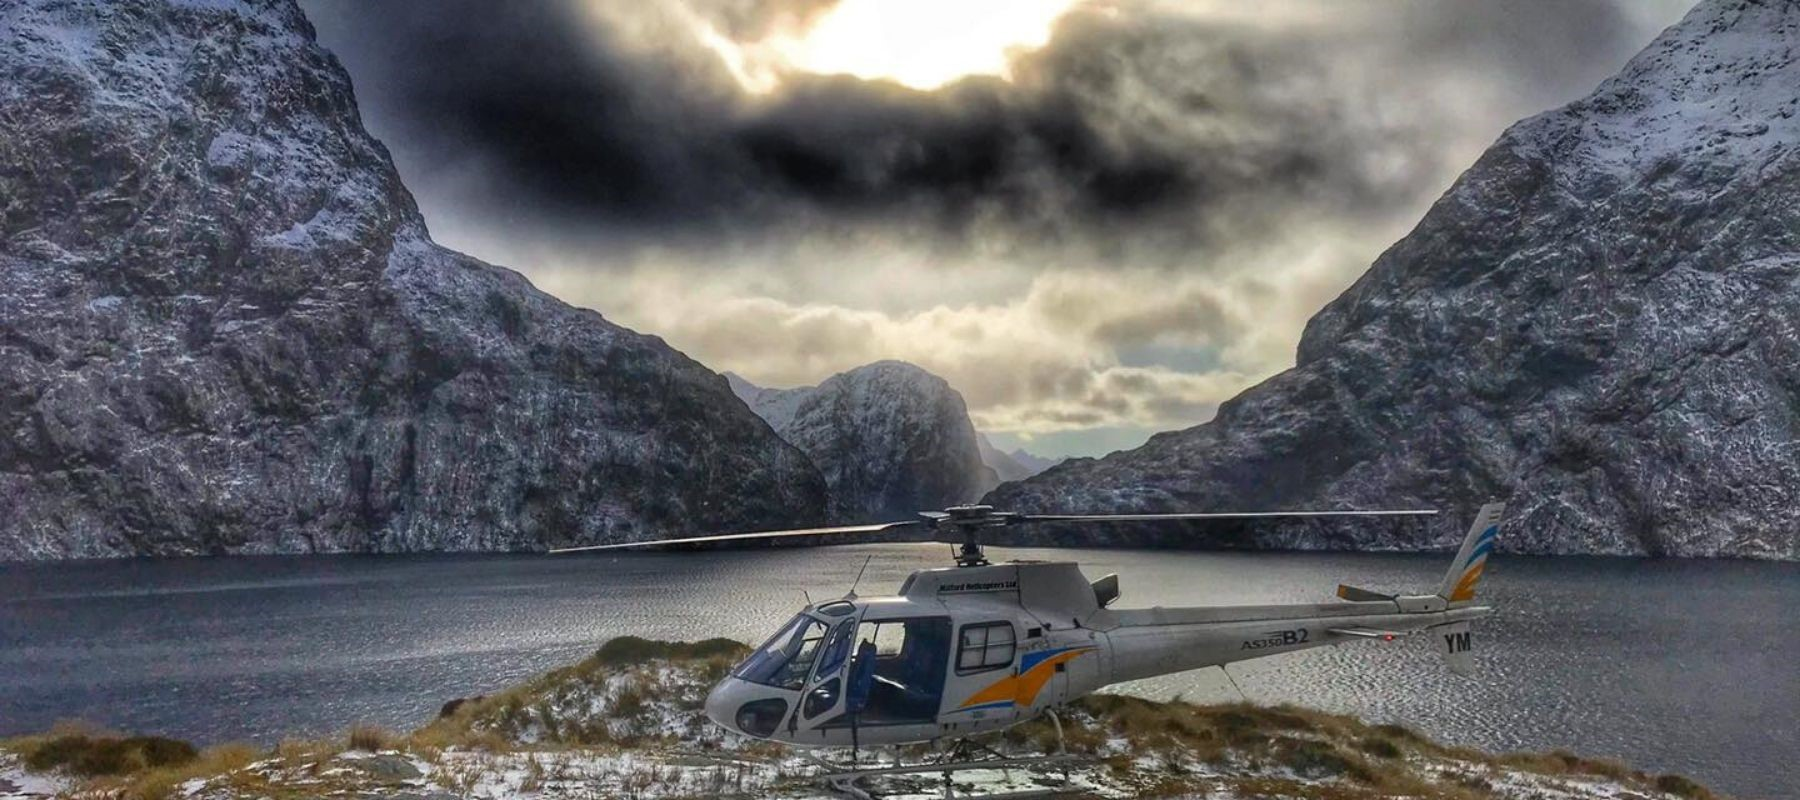 A helicopter sits on tussocks next Milford Sound from a scenic flight.